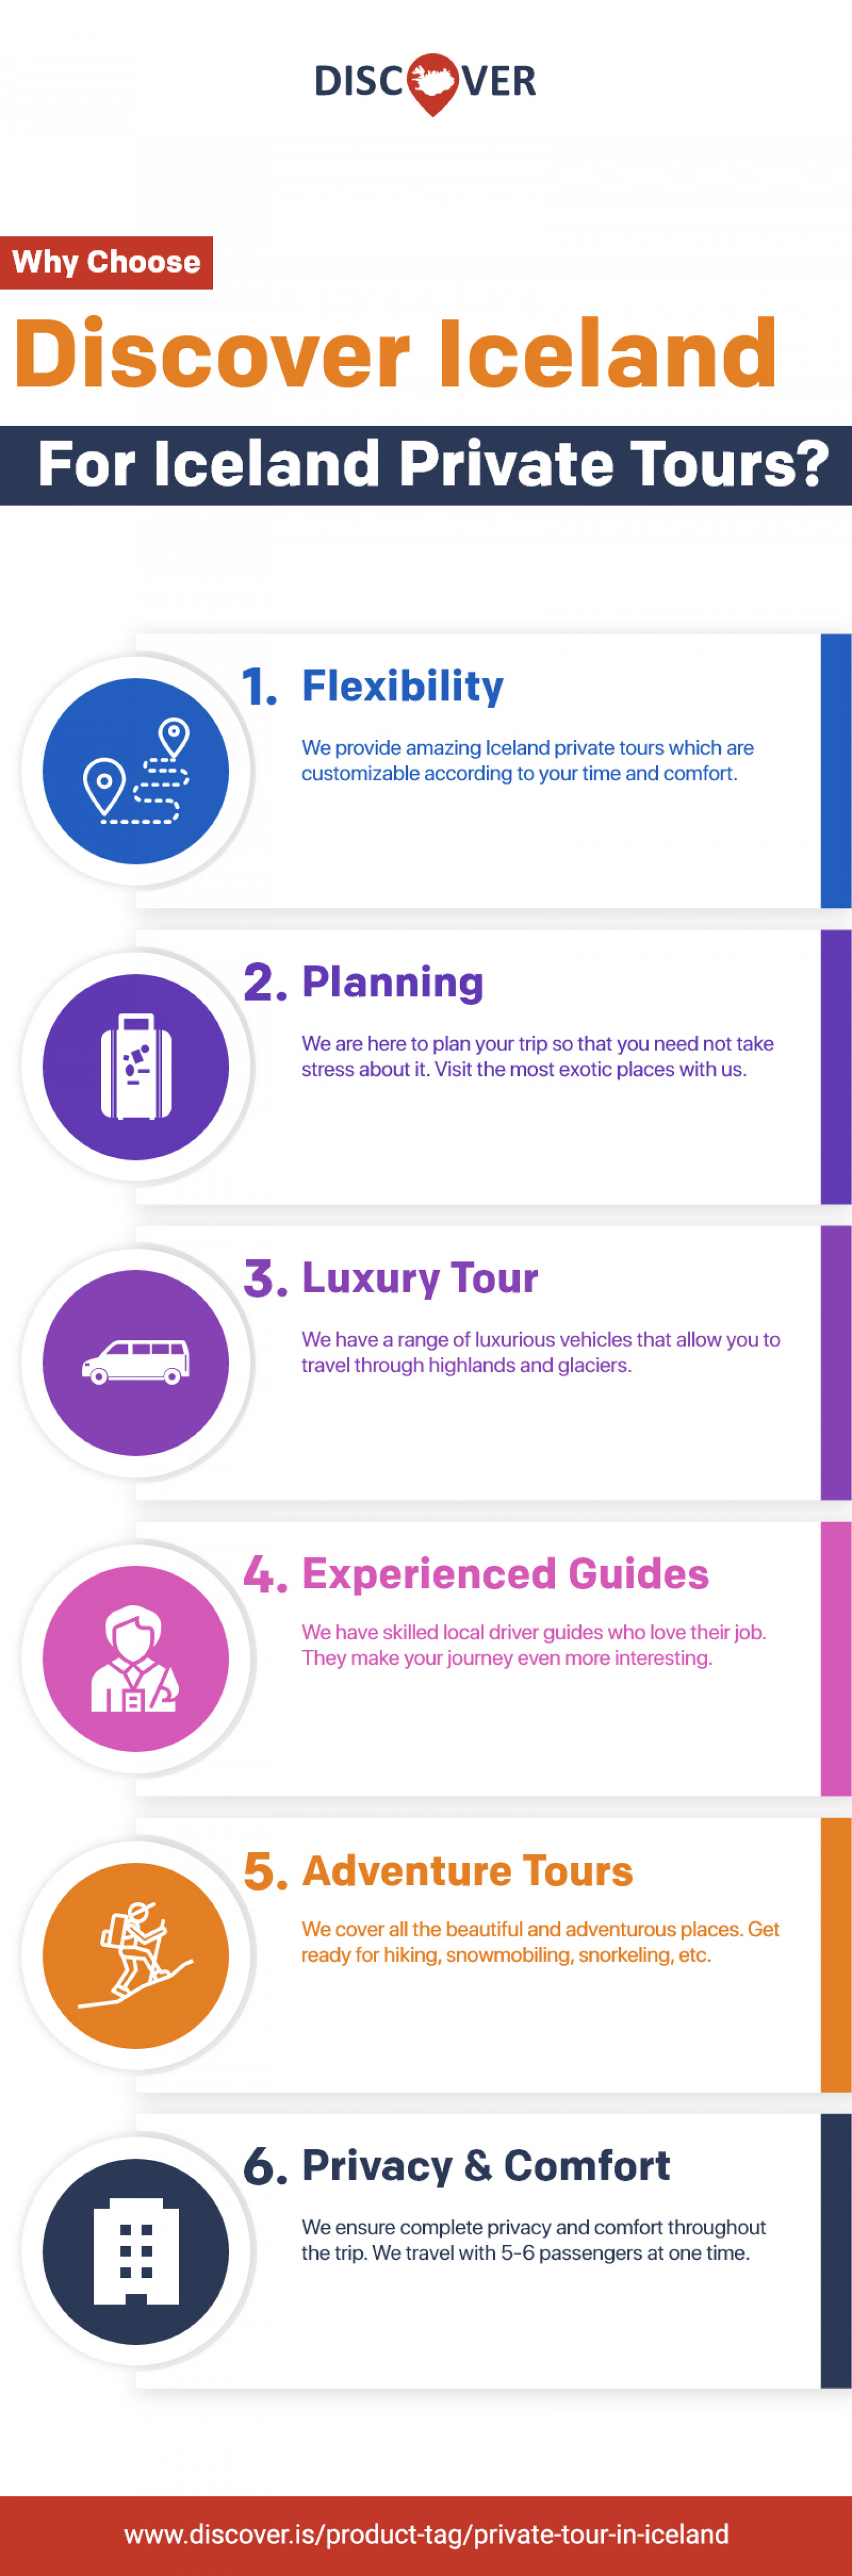 Choose Discover Iceland for Iceland Private Tours Infographic